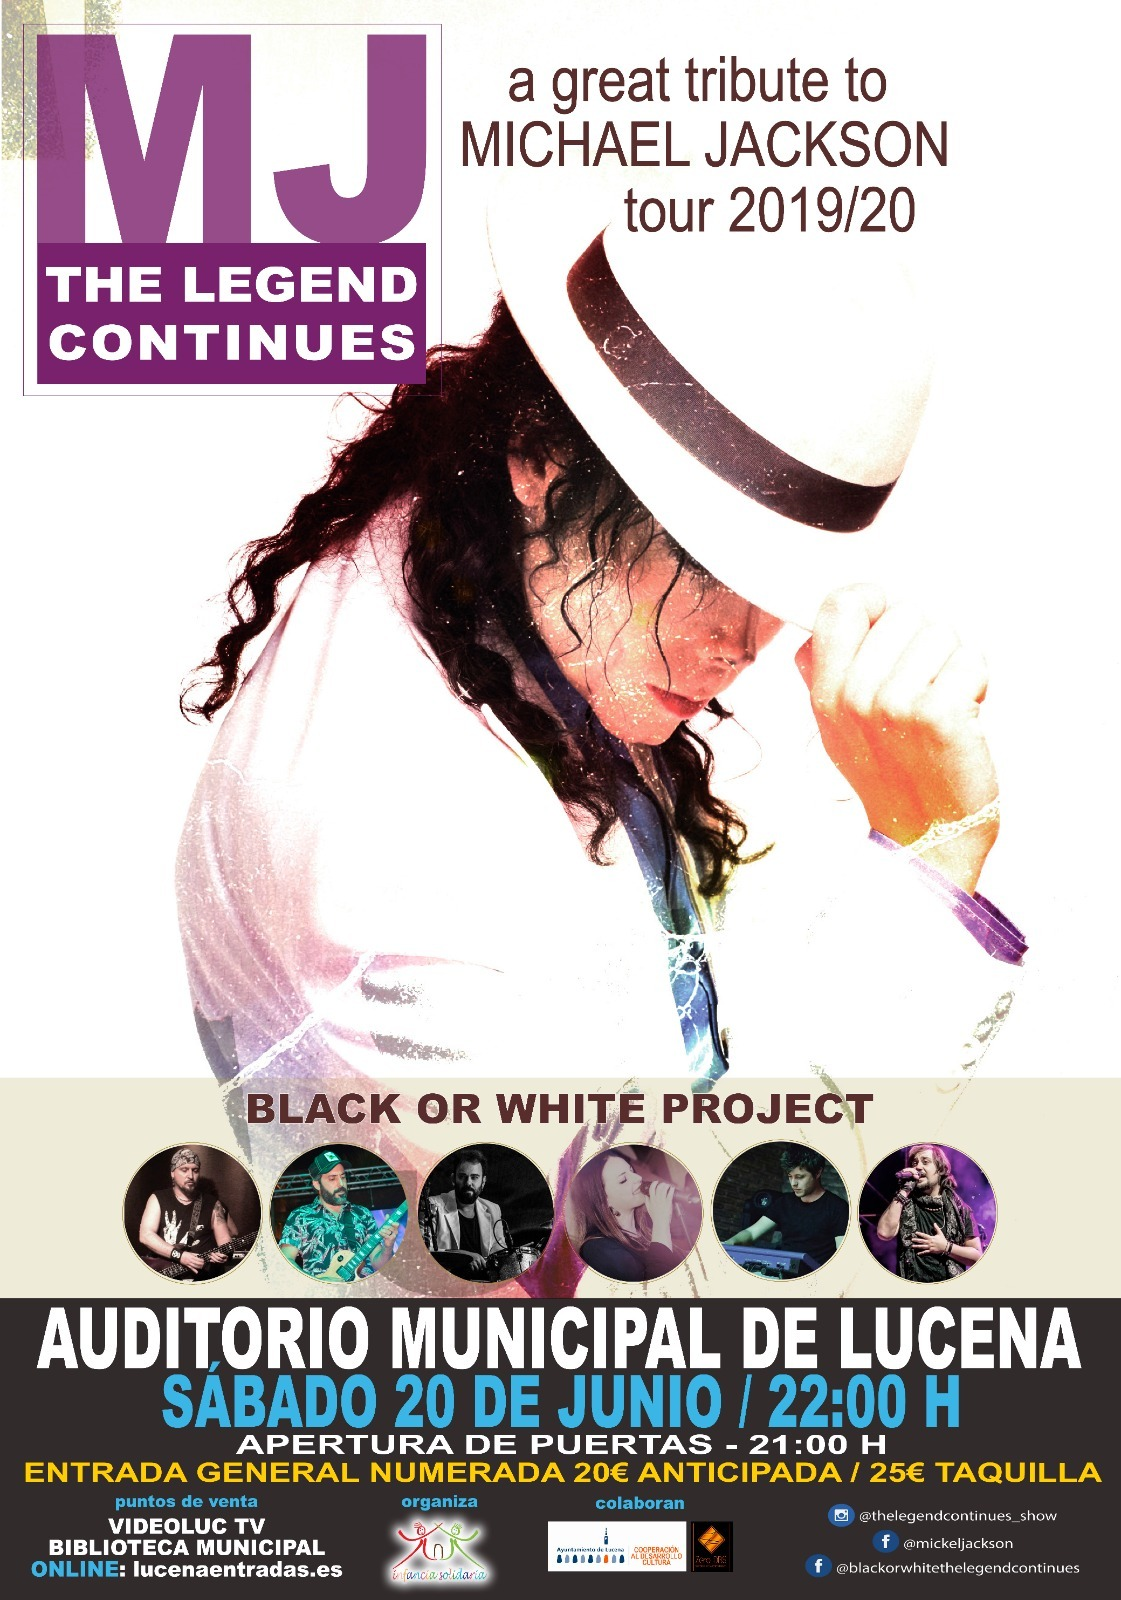 TRIBUTO A MICHAEL JACKSON @ Auditorio Municipal